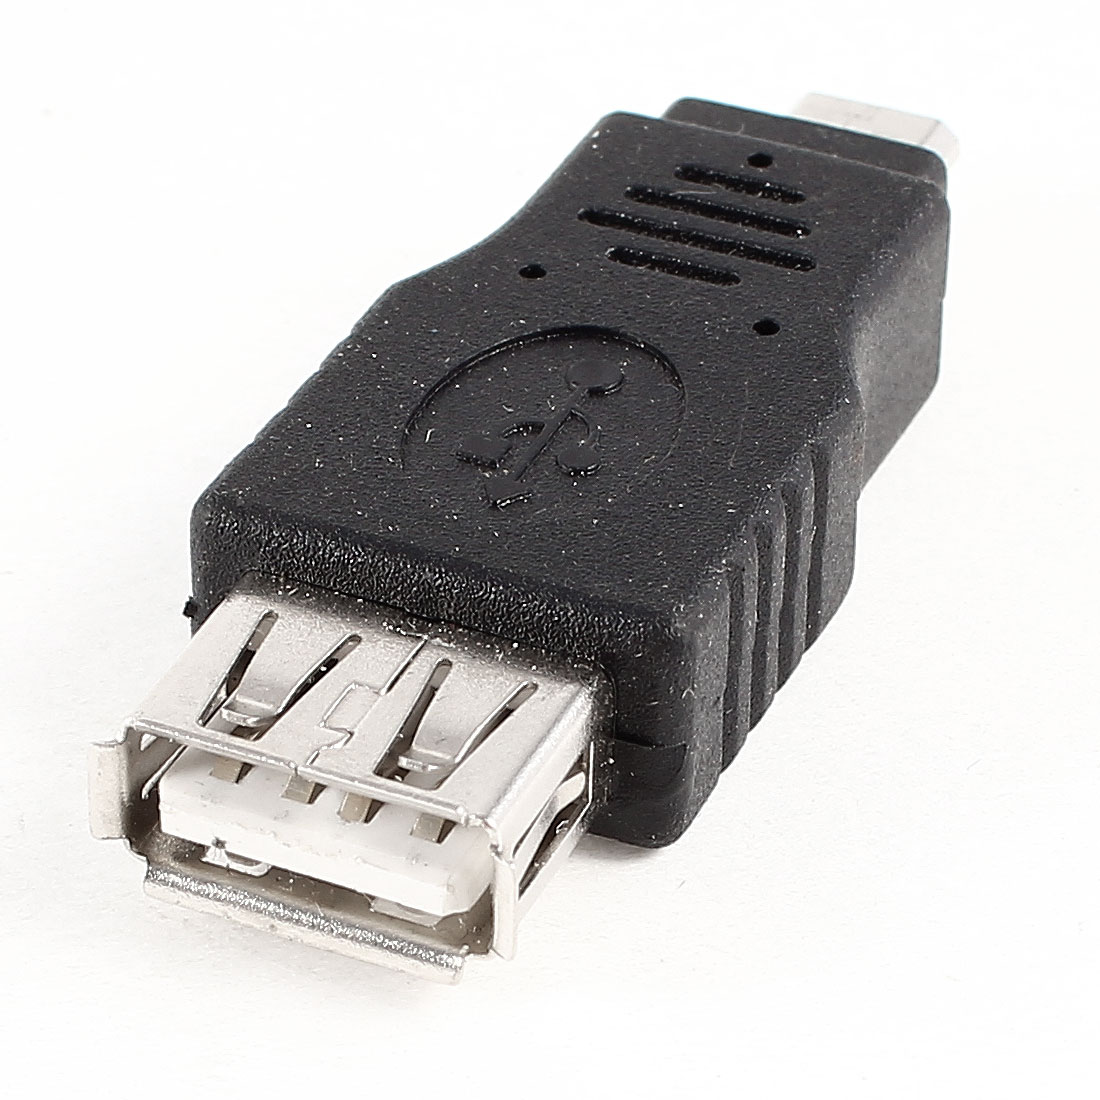 USB 2.0 Type A Female to Micro B Male F/M Jack Adapter Converter Black